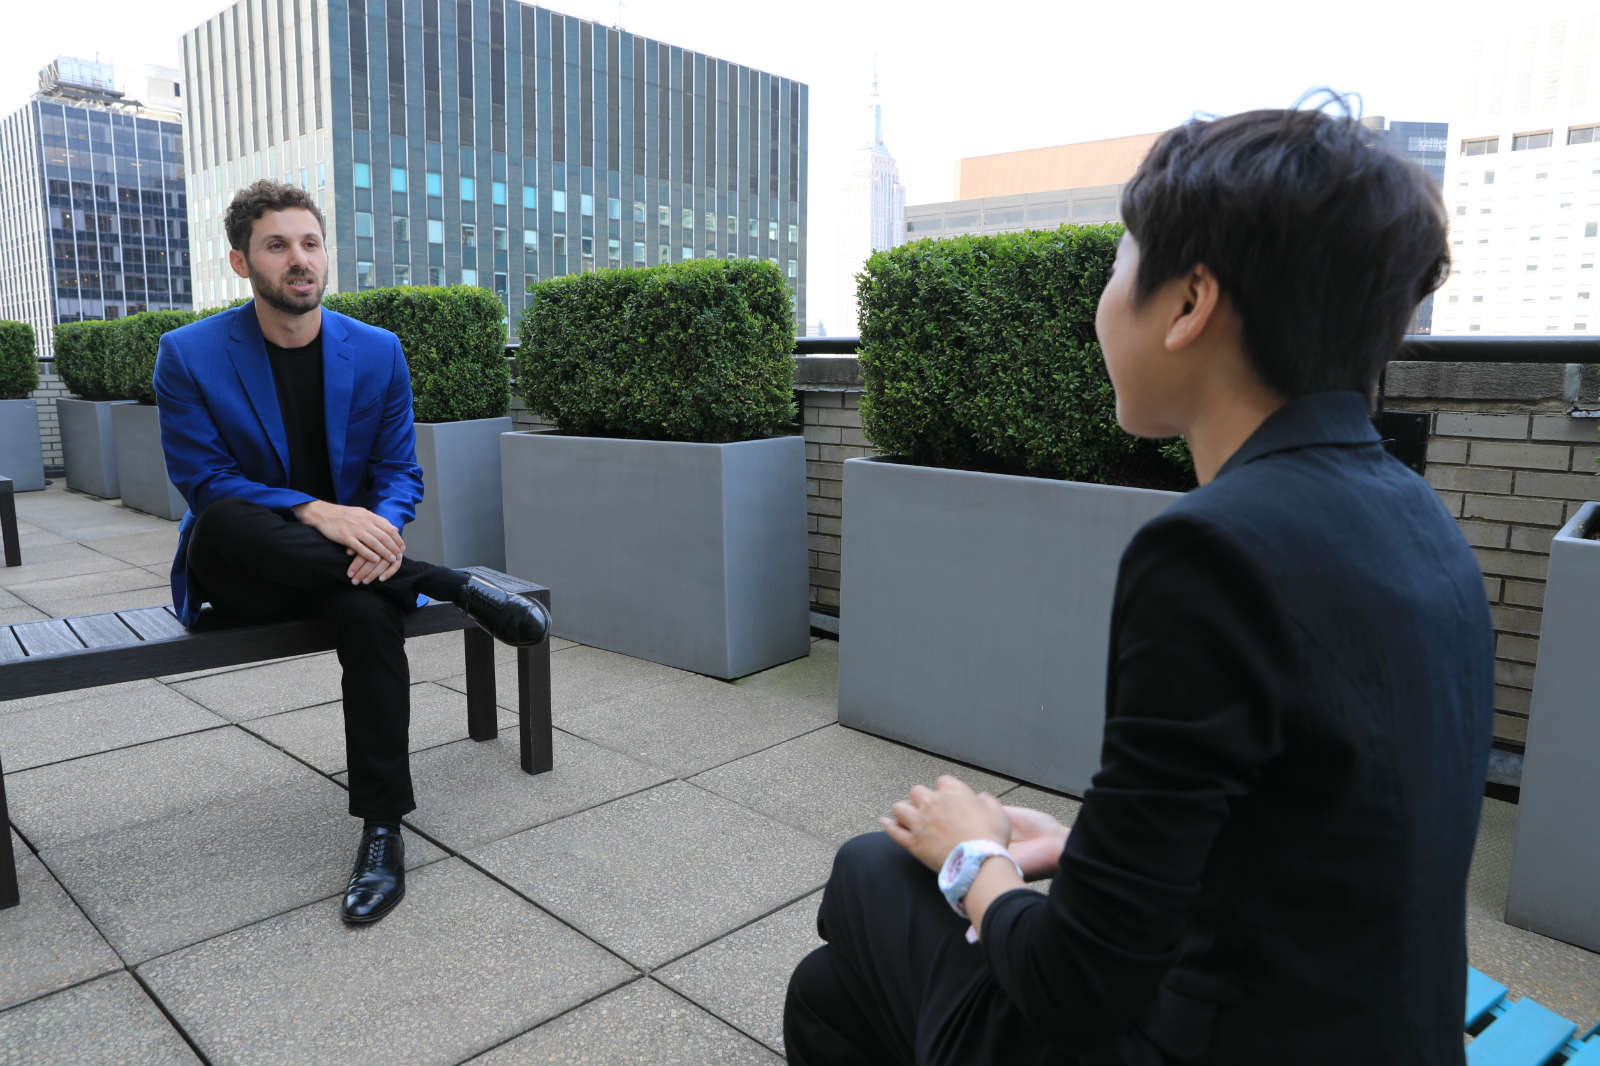 Zak Dychtwald receives an interview with Xinhua in midtown Manhattan of New York, the United States, July 26, 2019. (Xinhua/Zhang Mocheng)